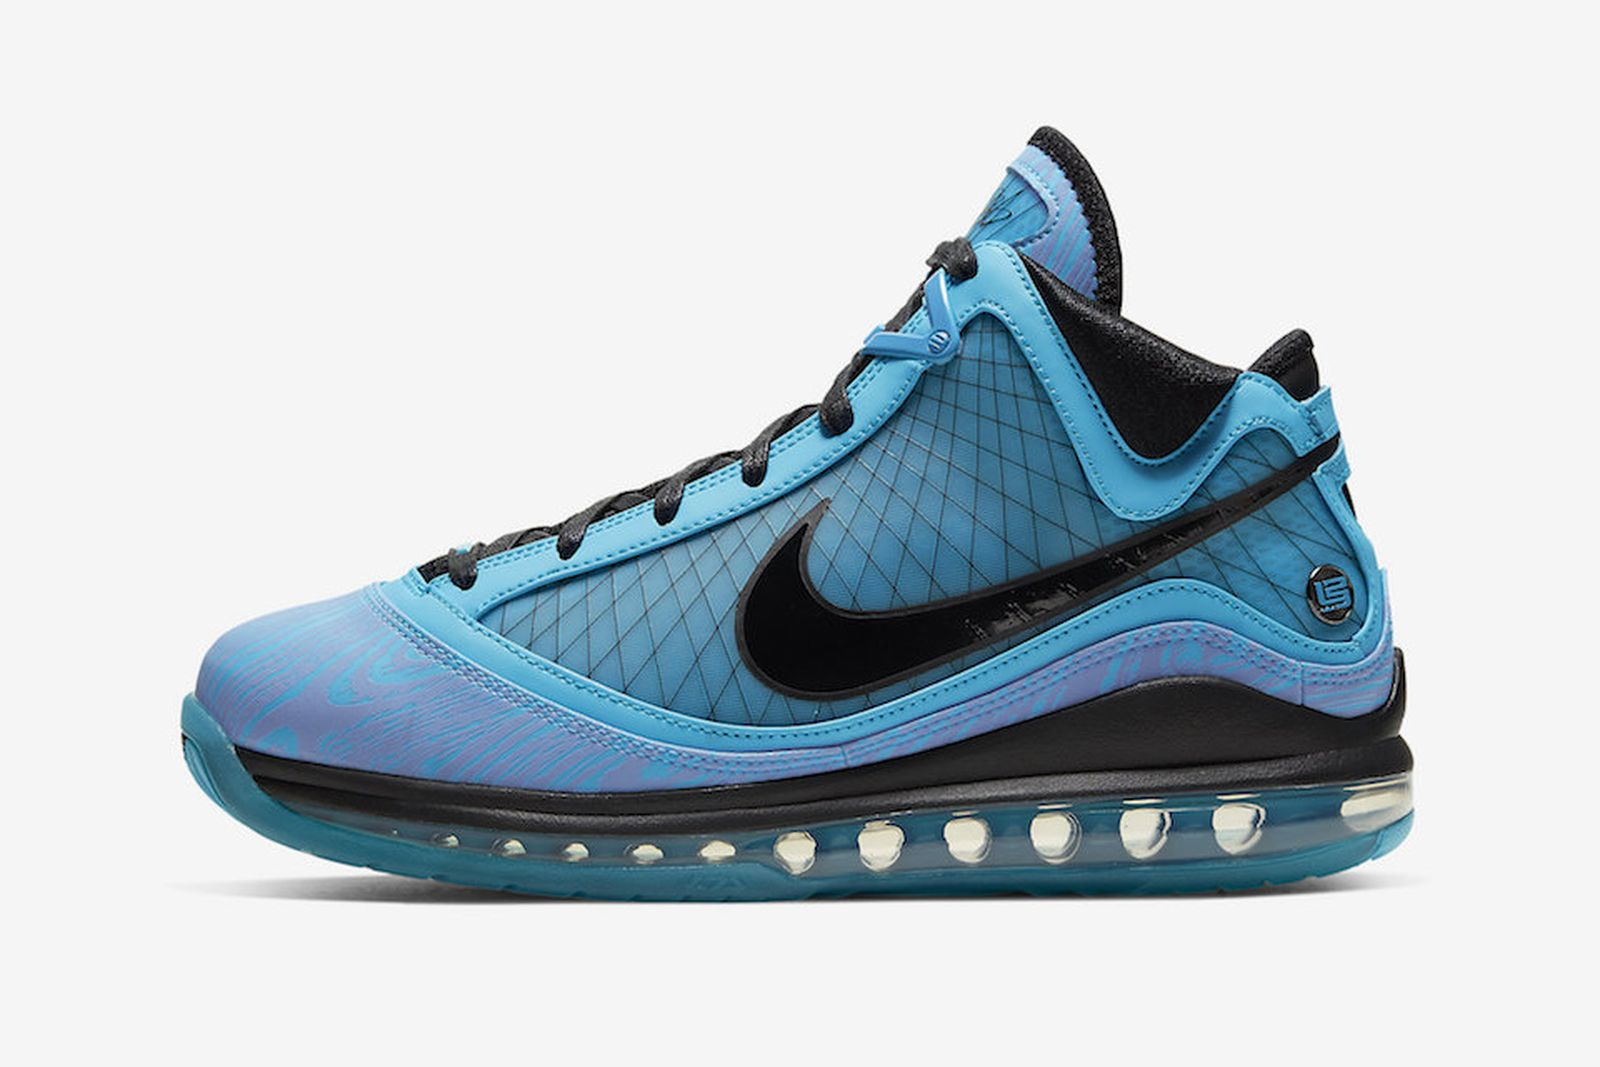 controlador Belicoso Lógico  One of the Best Nike LeBron Sneakers Ever Is Returning